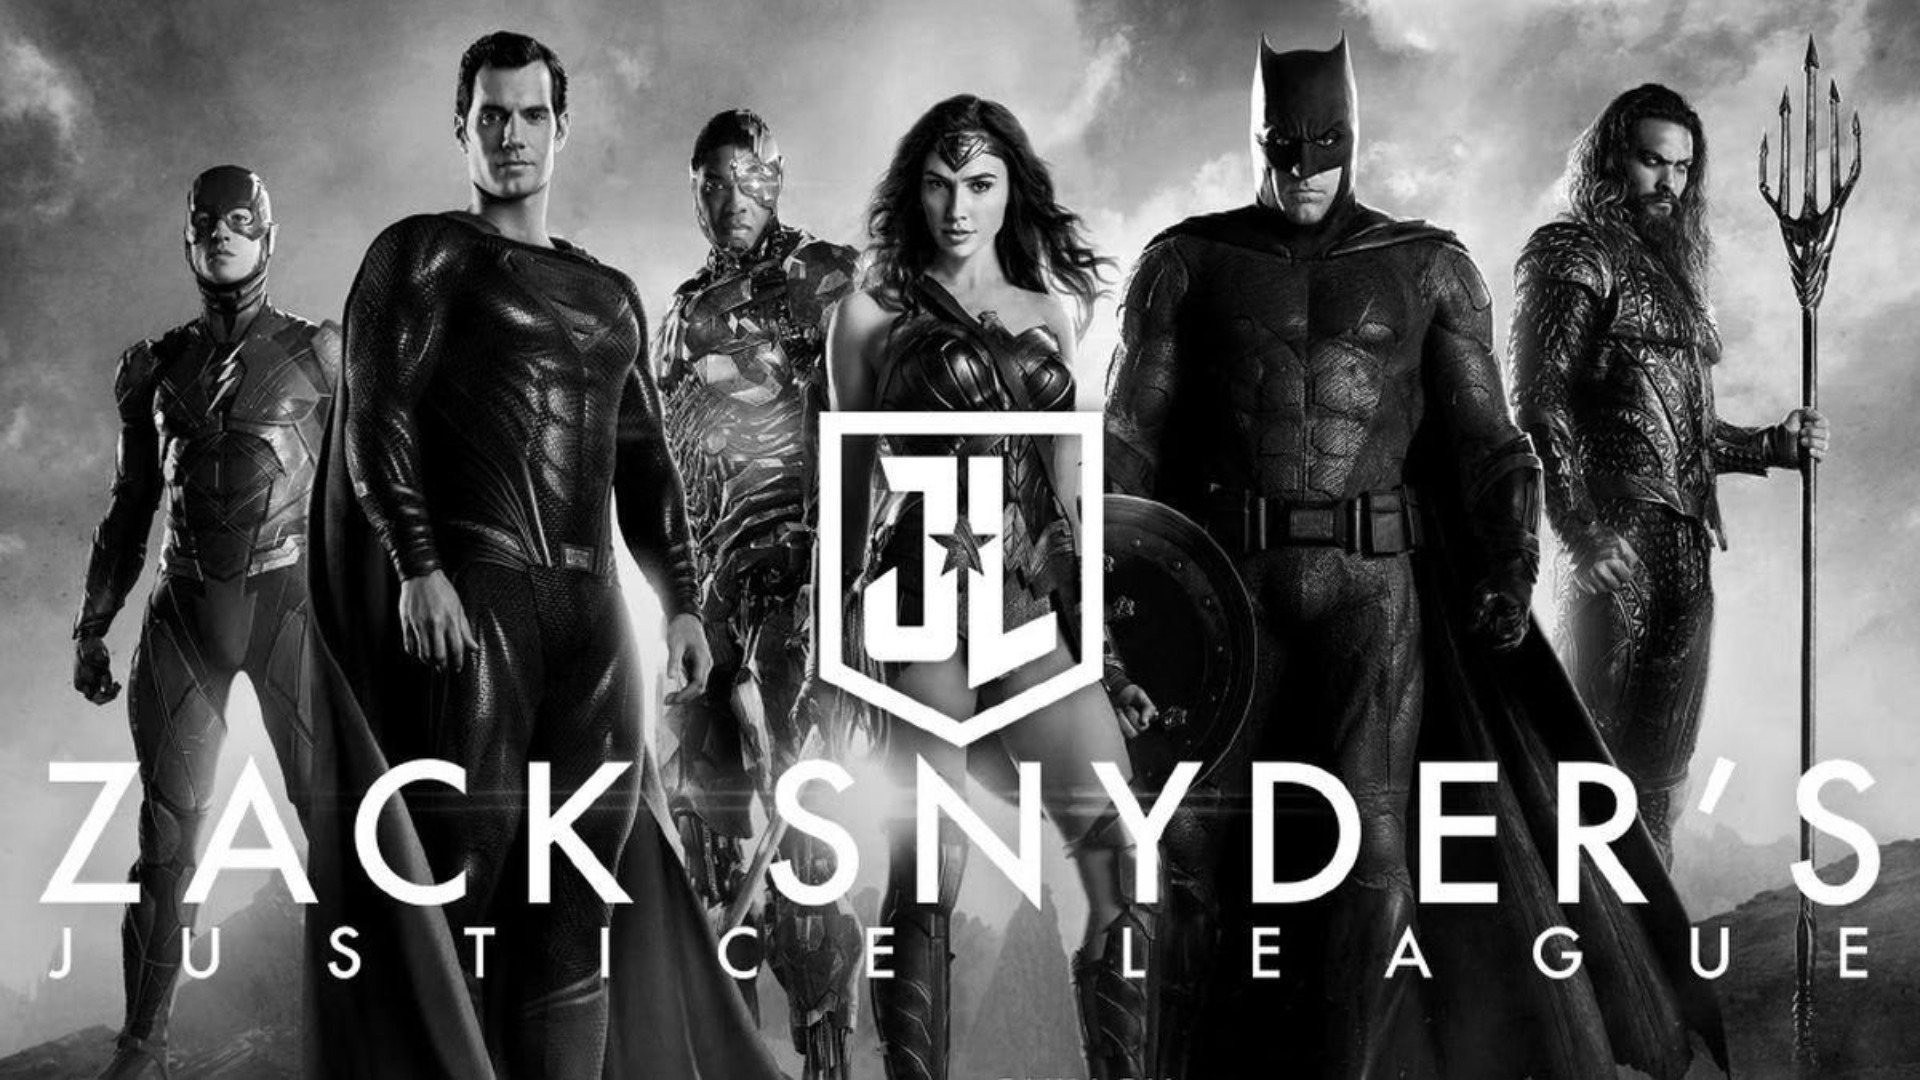 justice-league-snyder-cut-released-and-trends-all-weekend-fans-want-the-dc-snyderverse-to-continue